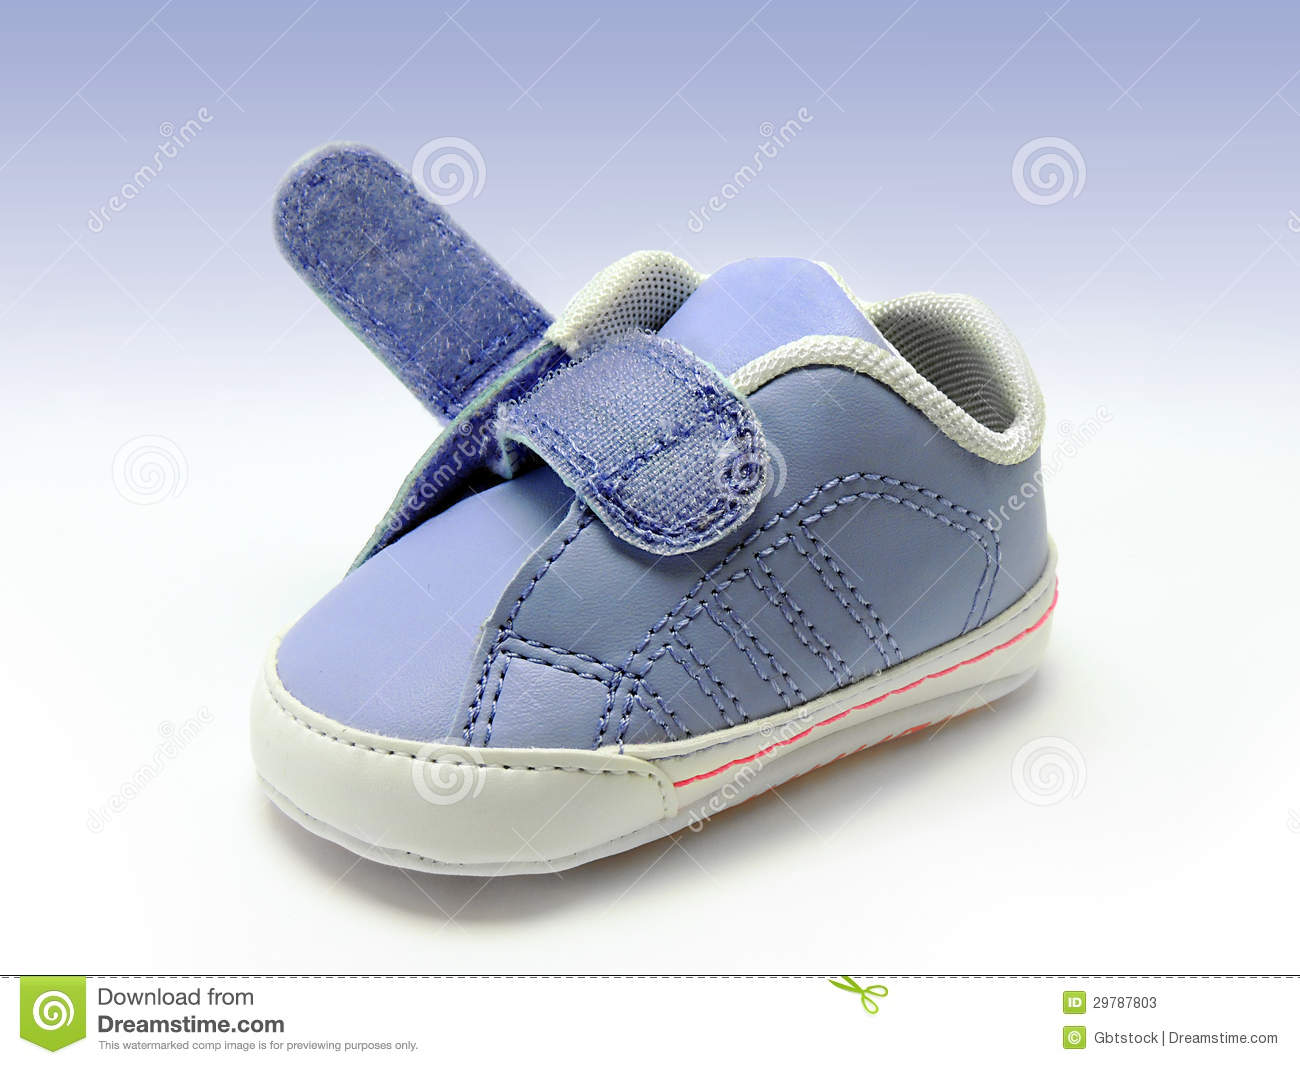 blue baby shoe with open velcro strap  isolated  clipping path included stock photos image sunset clip art in black & white sunset clip art in black & white